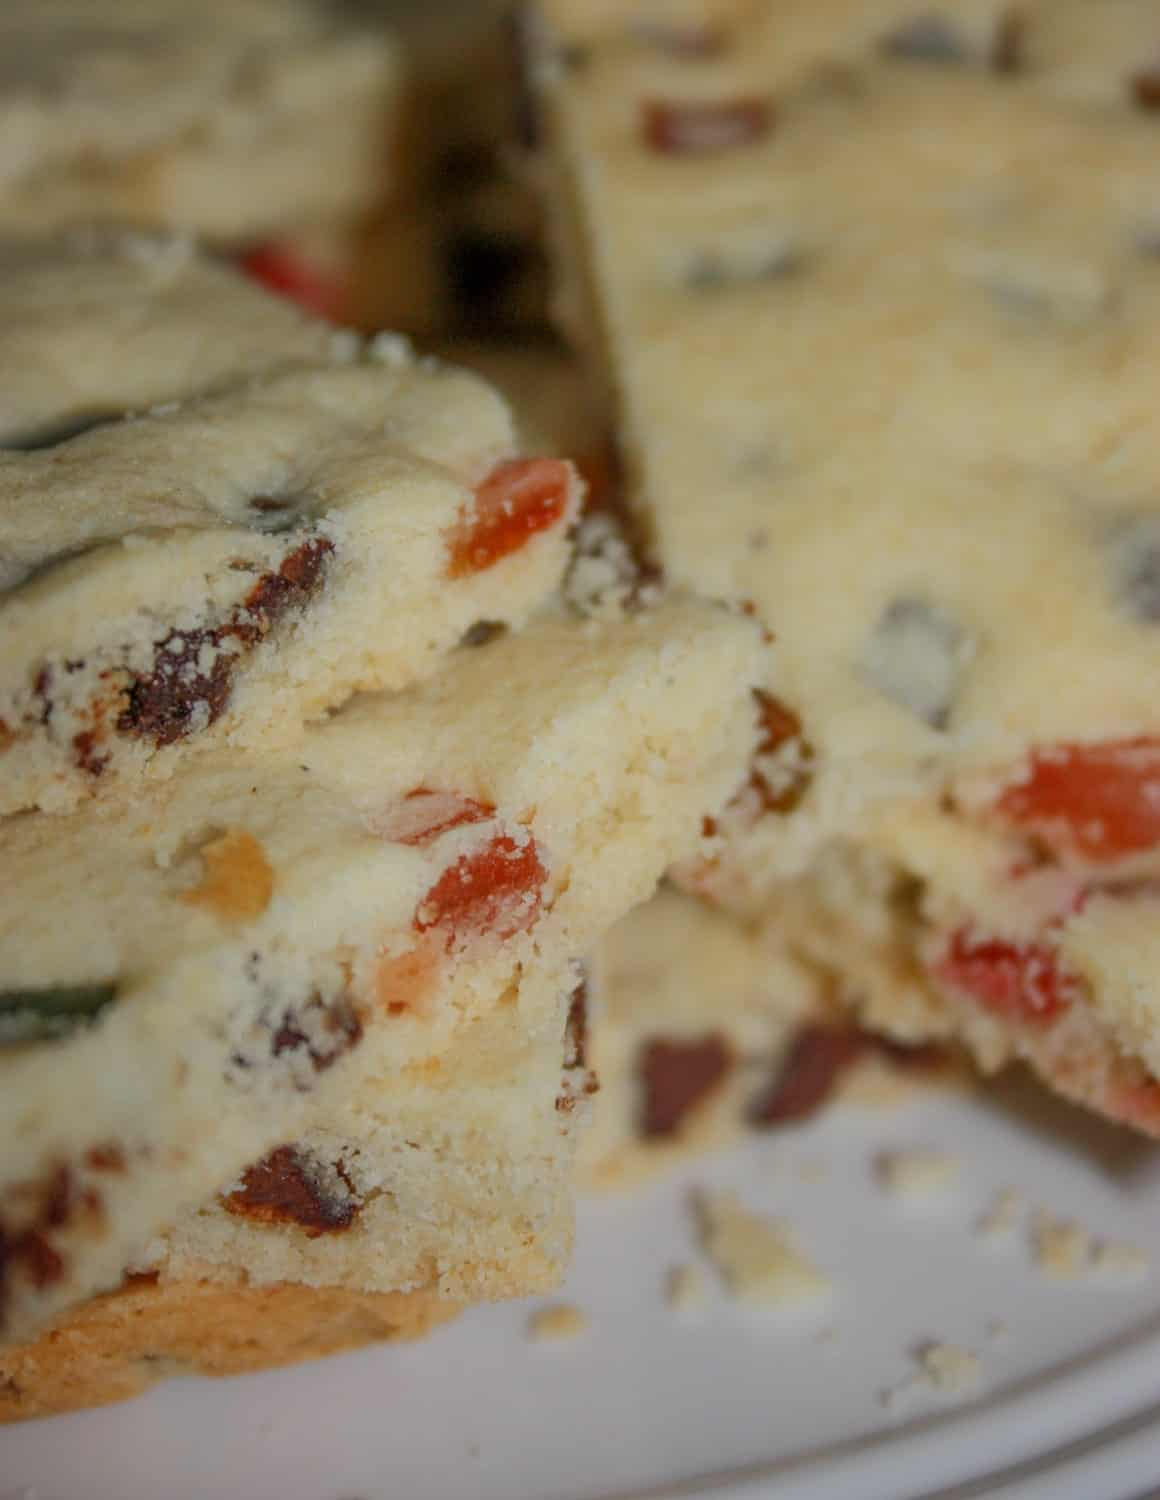 Festive Shortbread Cookie Bars are a colourful addition to any holiday dessert tray. This gluten free version will certainly hit the spot for anyone whether they have a gluten intolerance or can eat a regular diet.